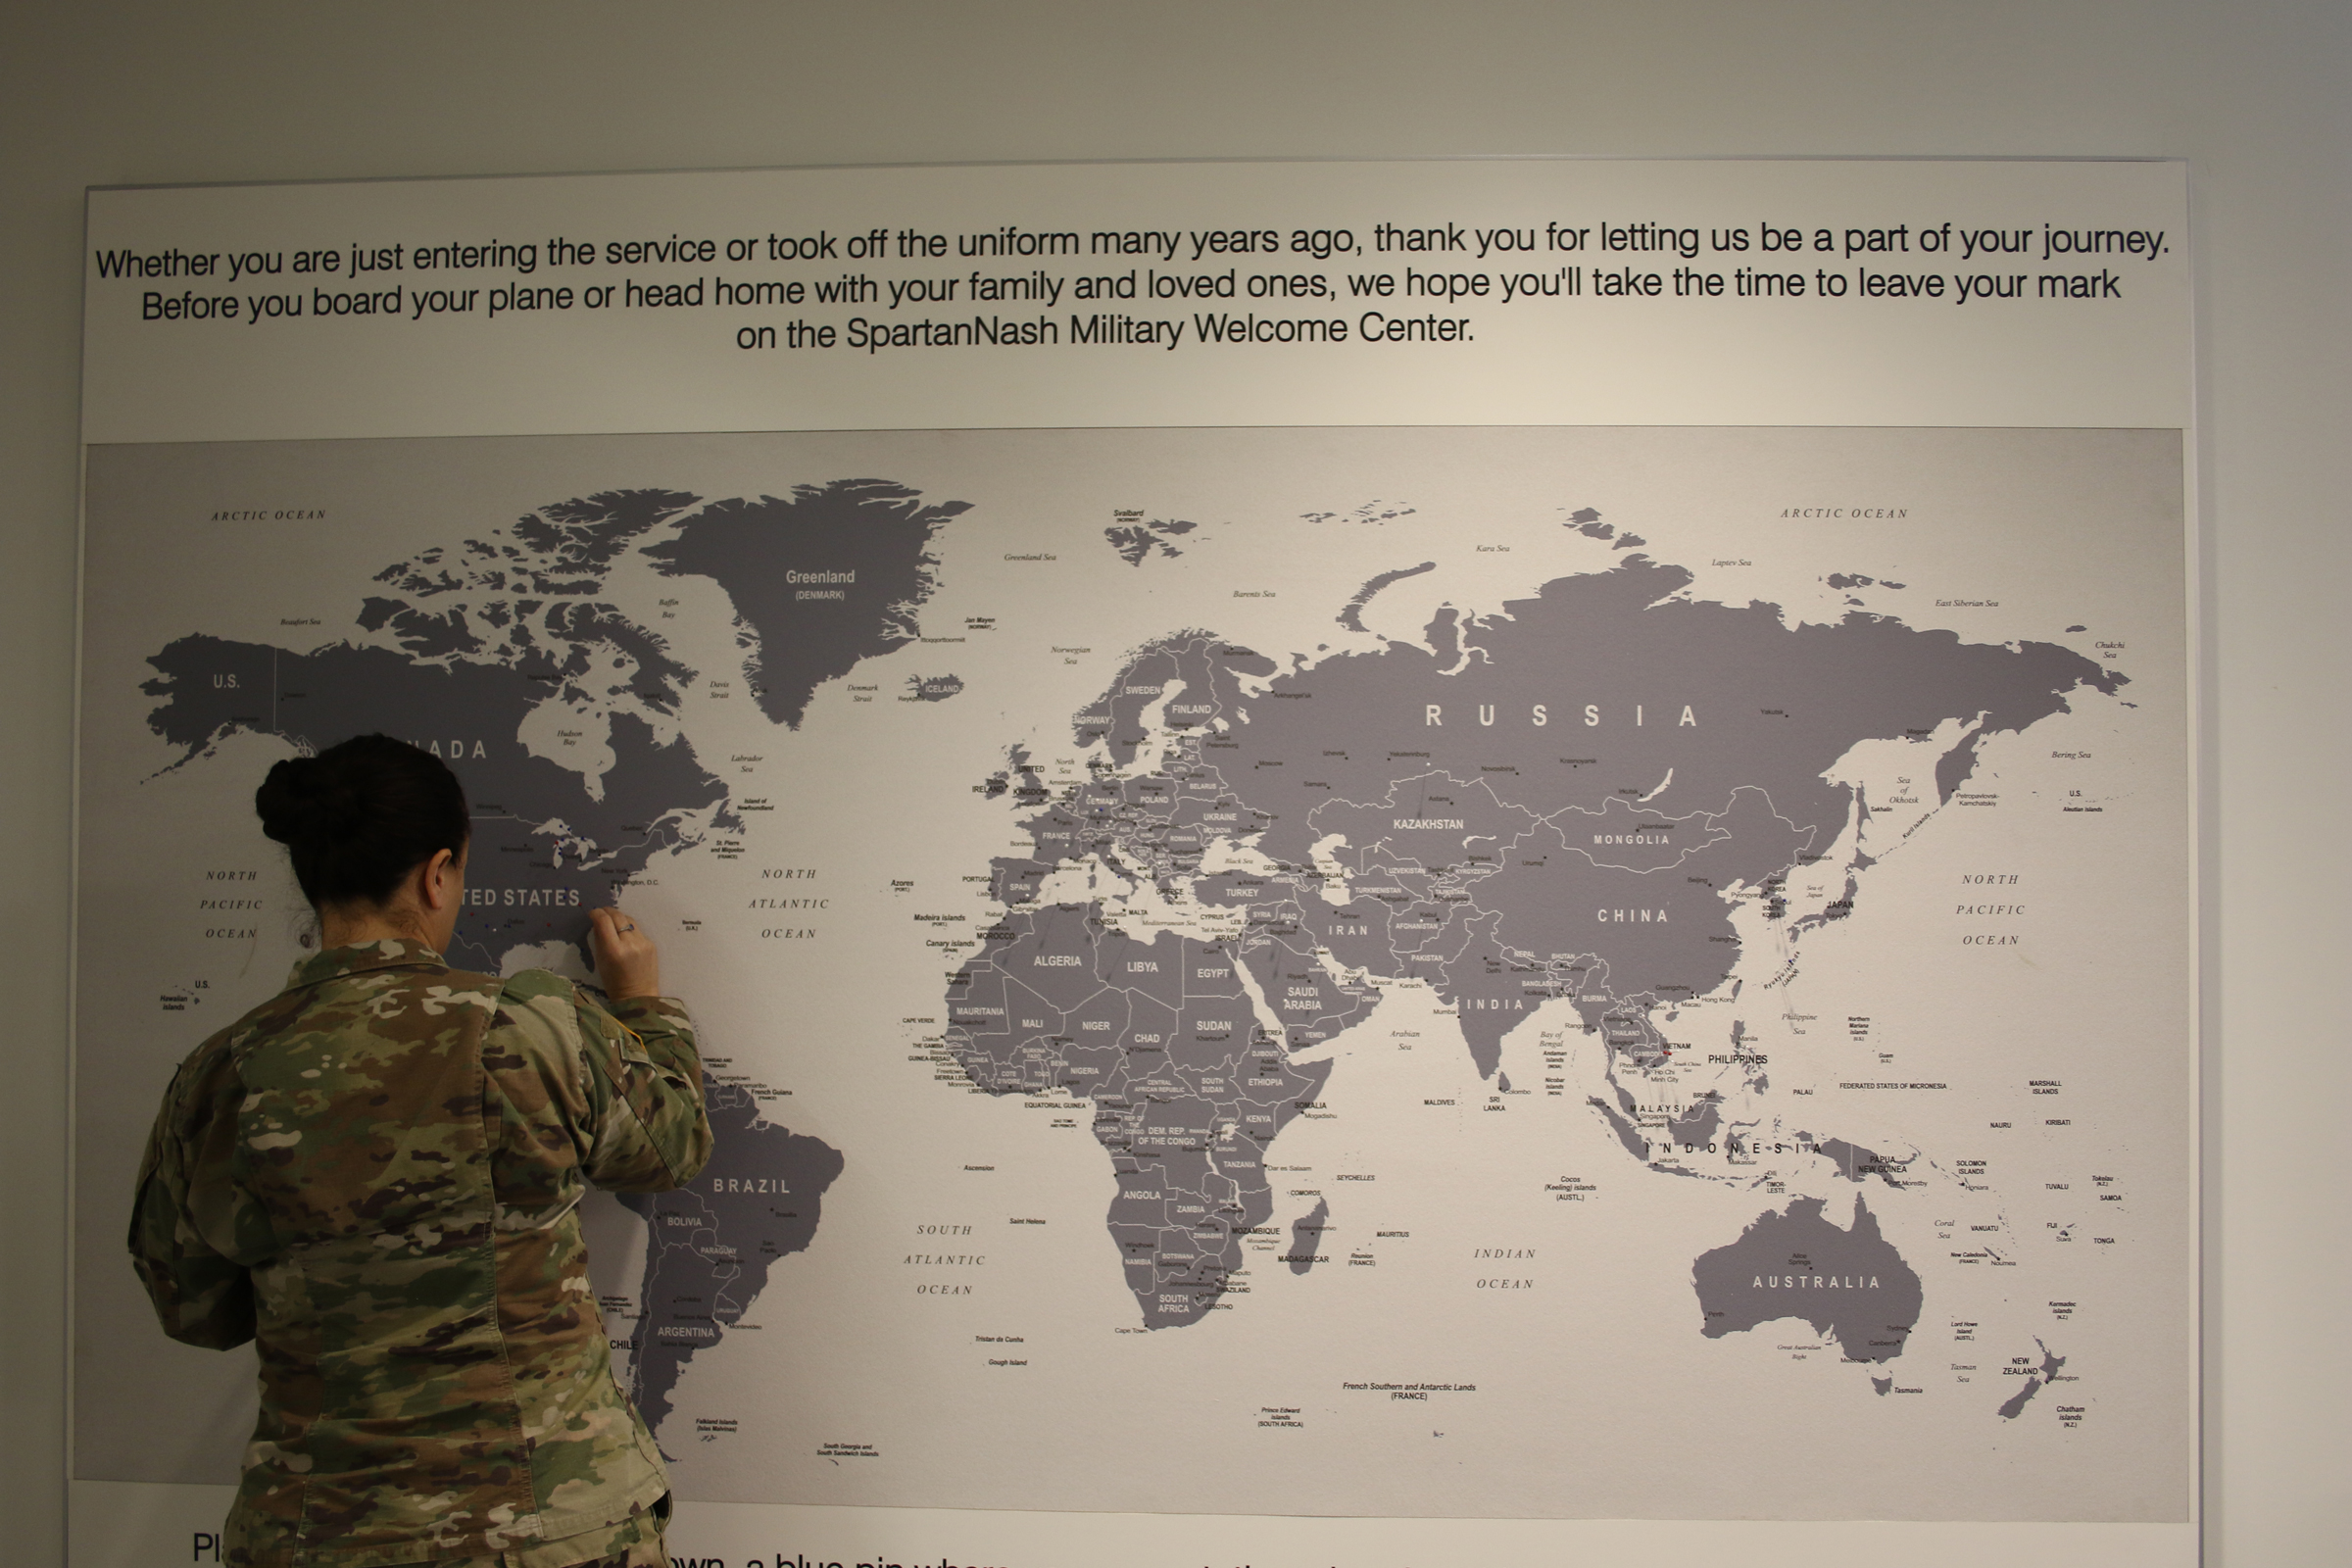 Gerald R. Ford International Airport, in partnership with SpartanNash, opened the Military Welcome Center this week.